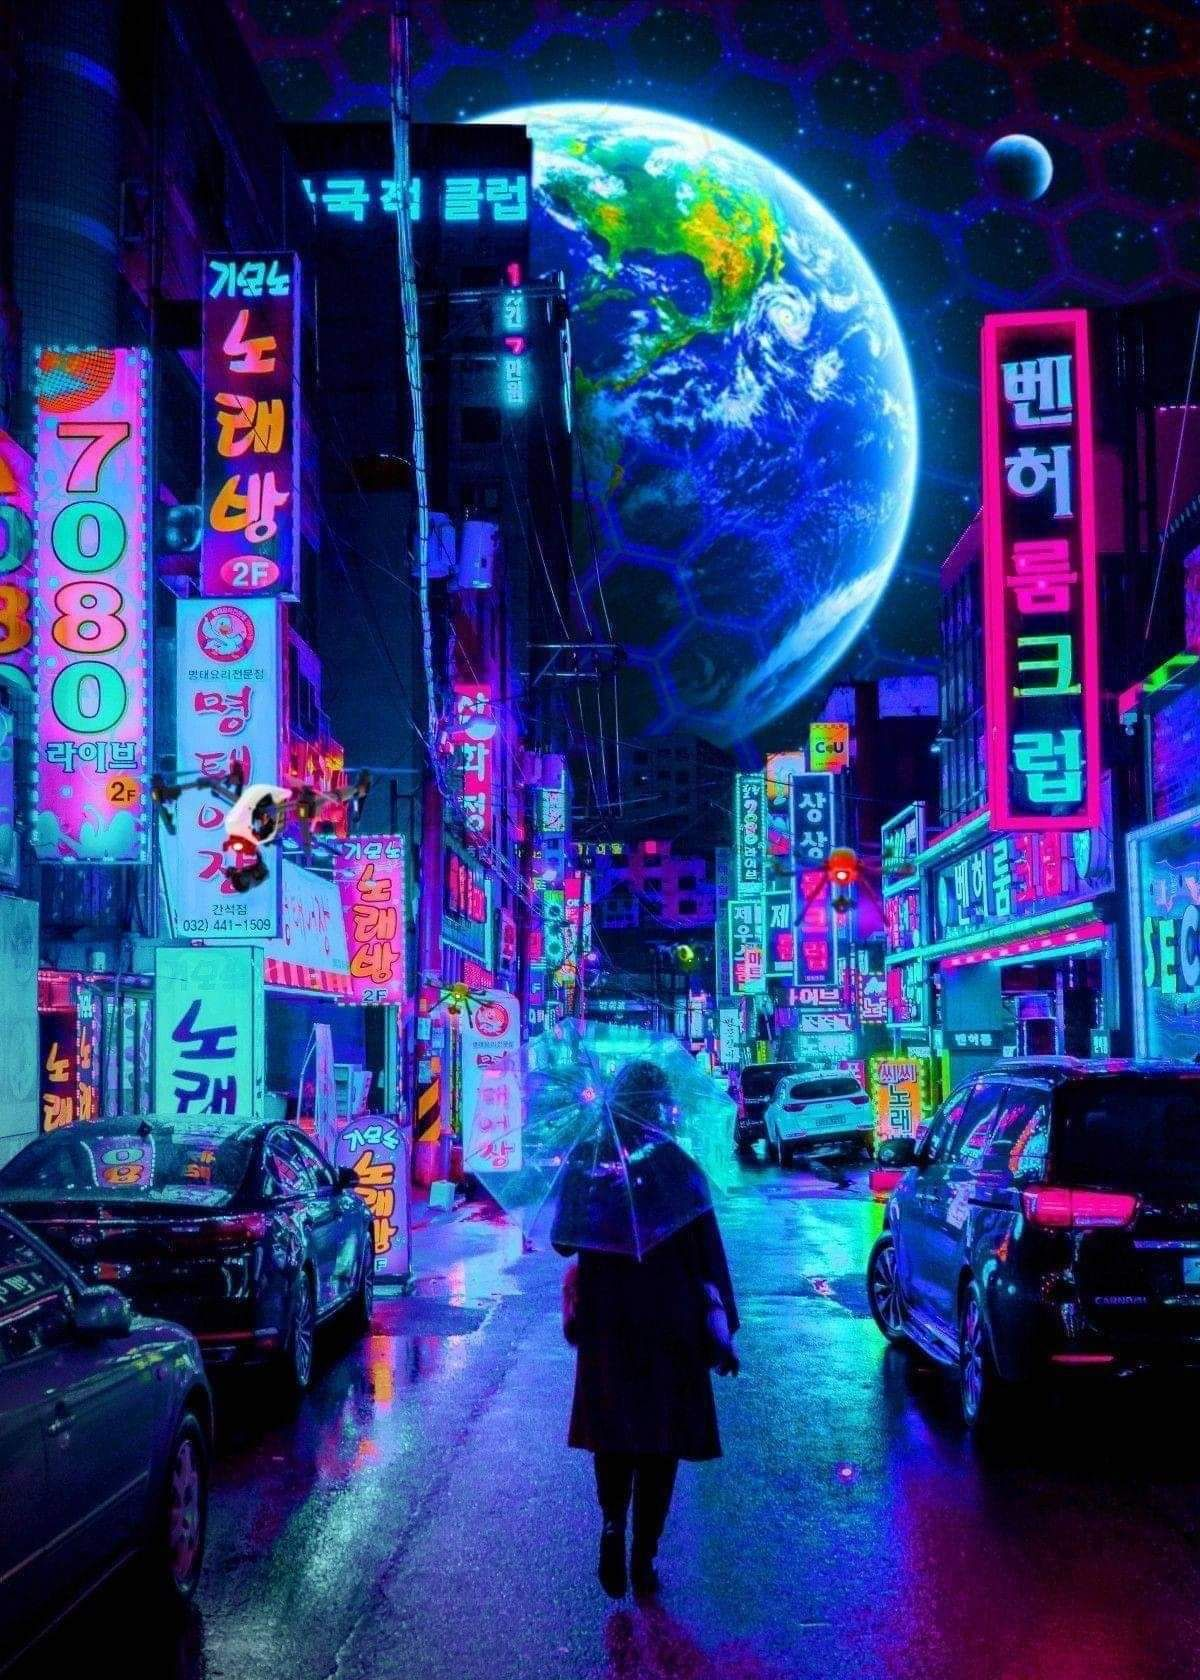 Walking Cyberpunk aesthetic, Cyberpunk city, Cyberpunk art